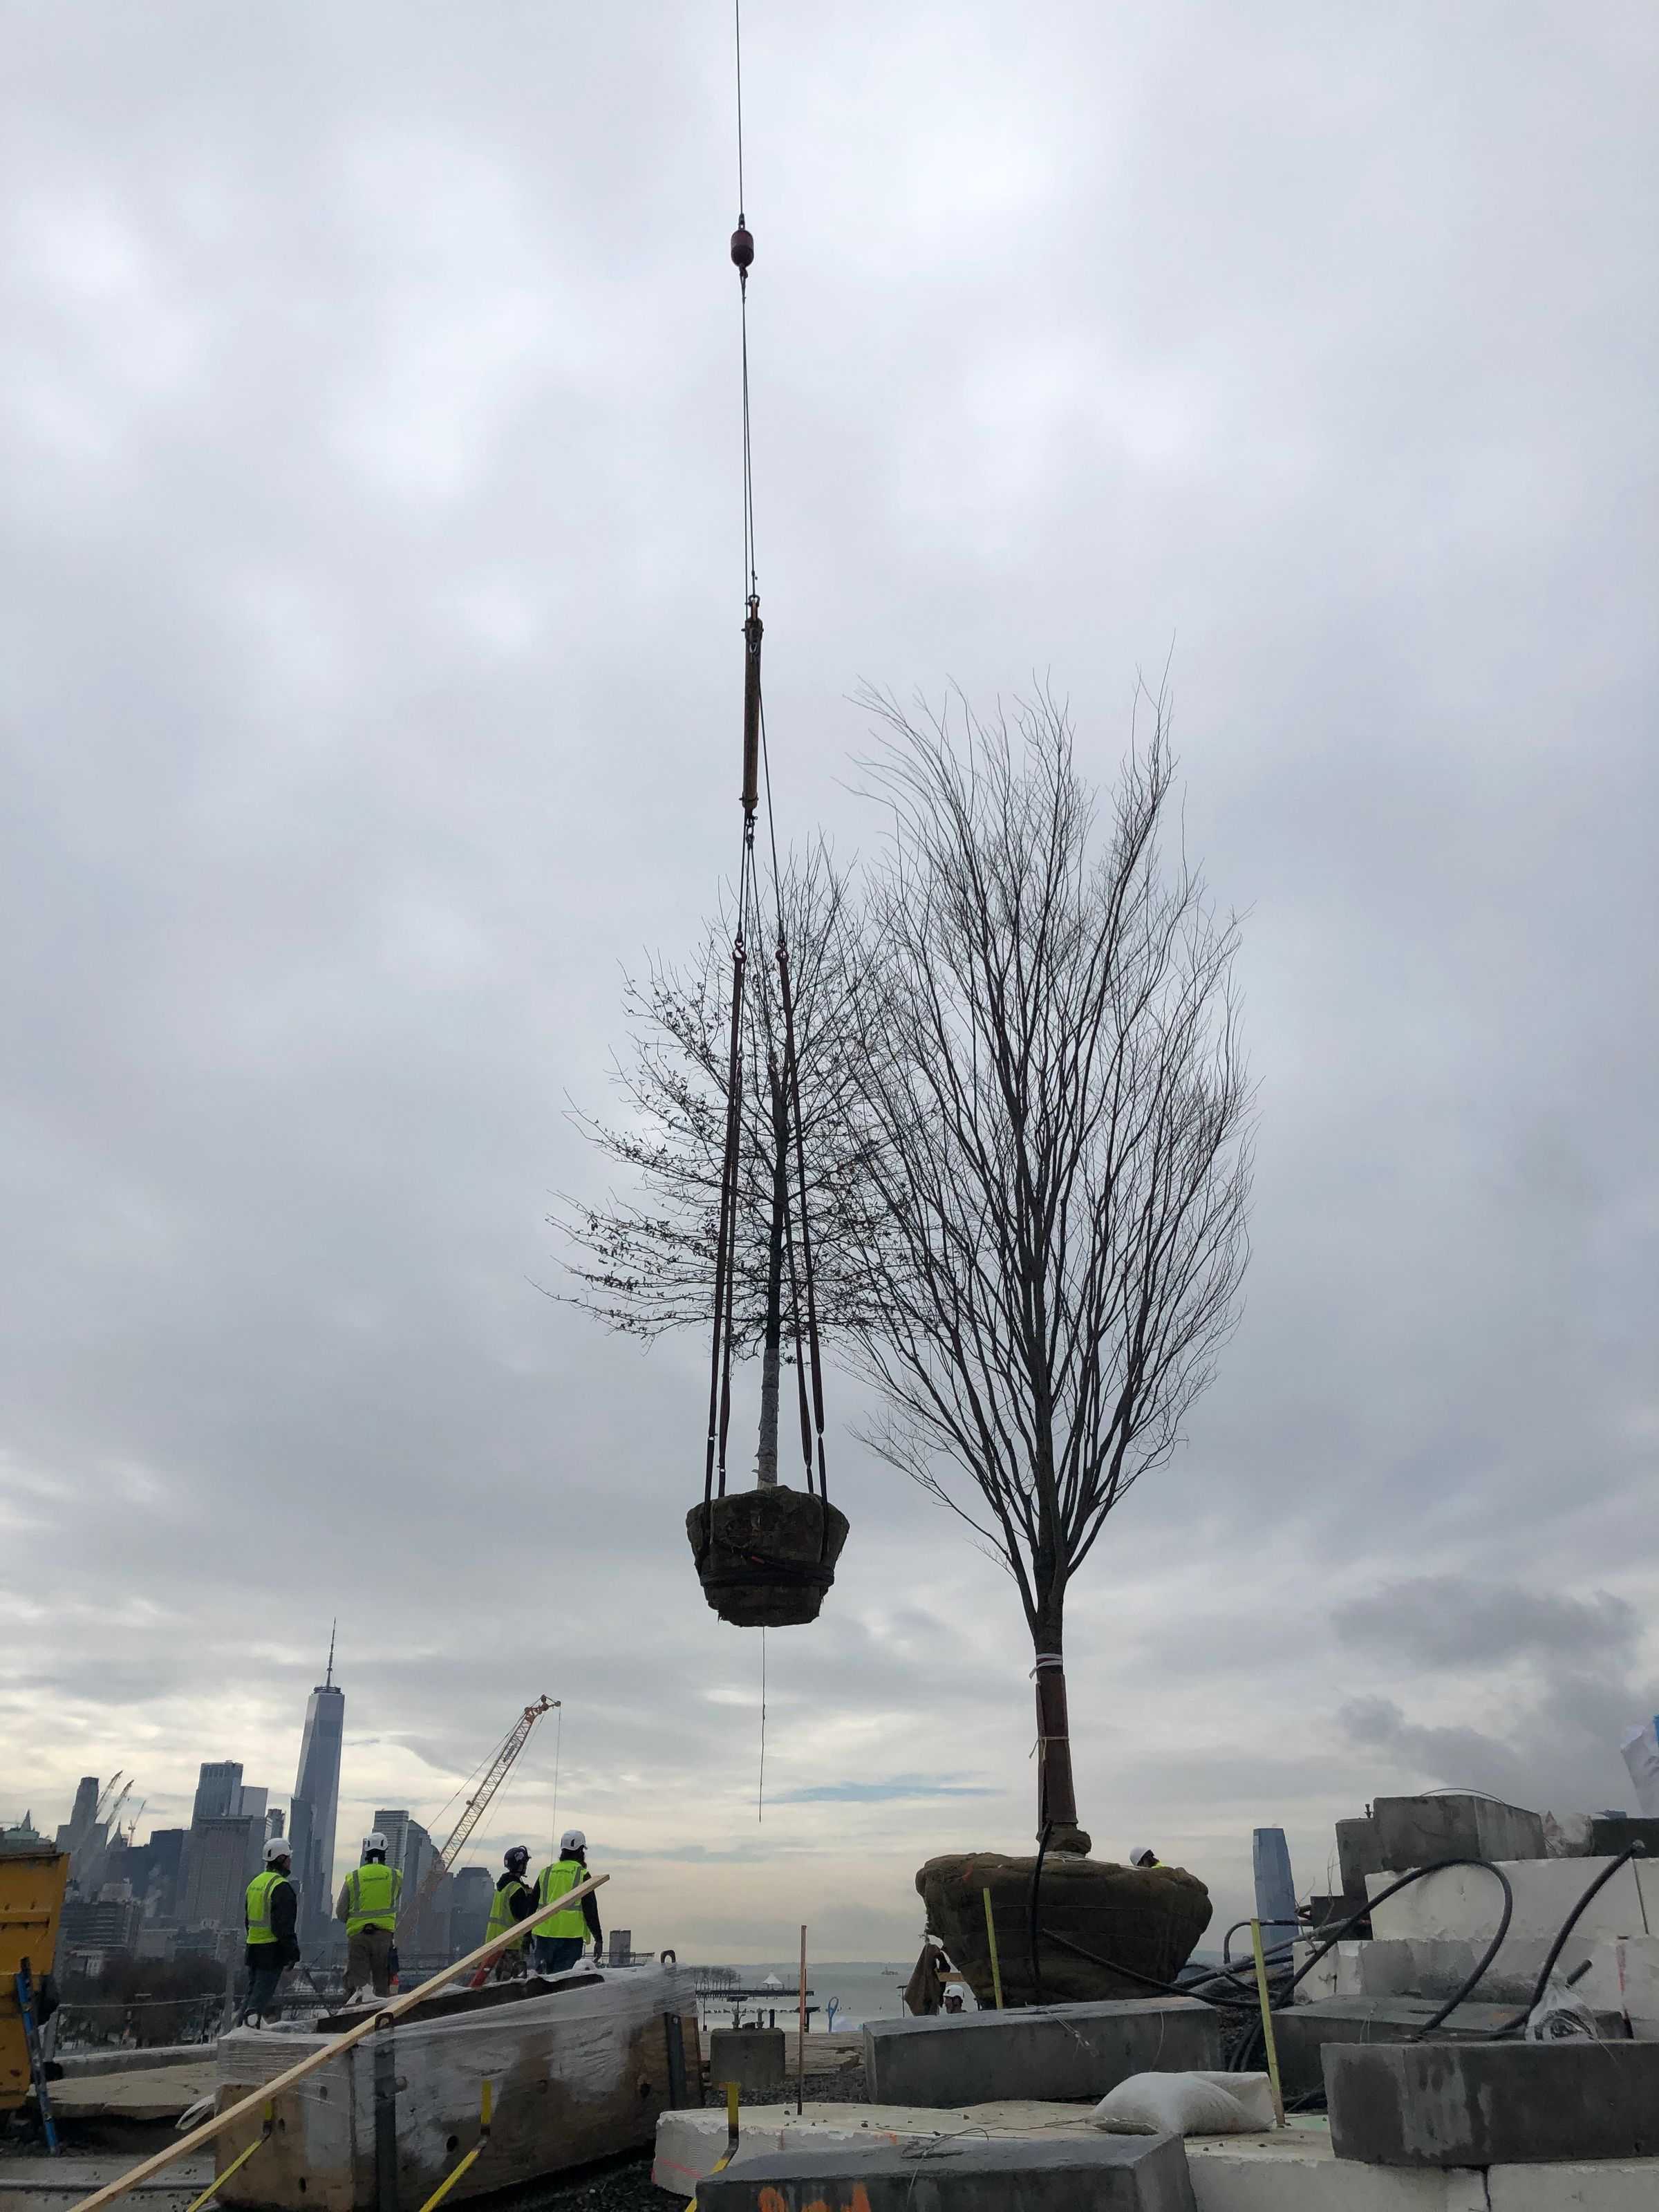 A tree being lifted by a crane.